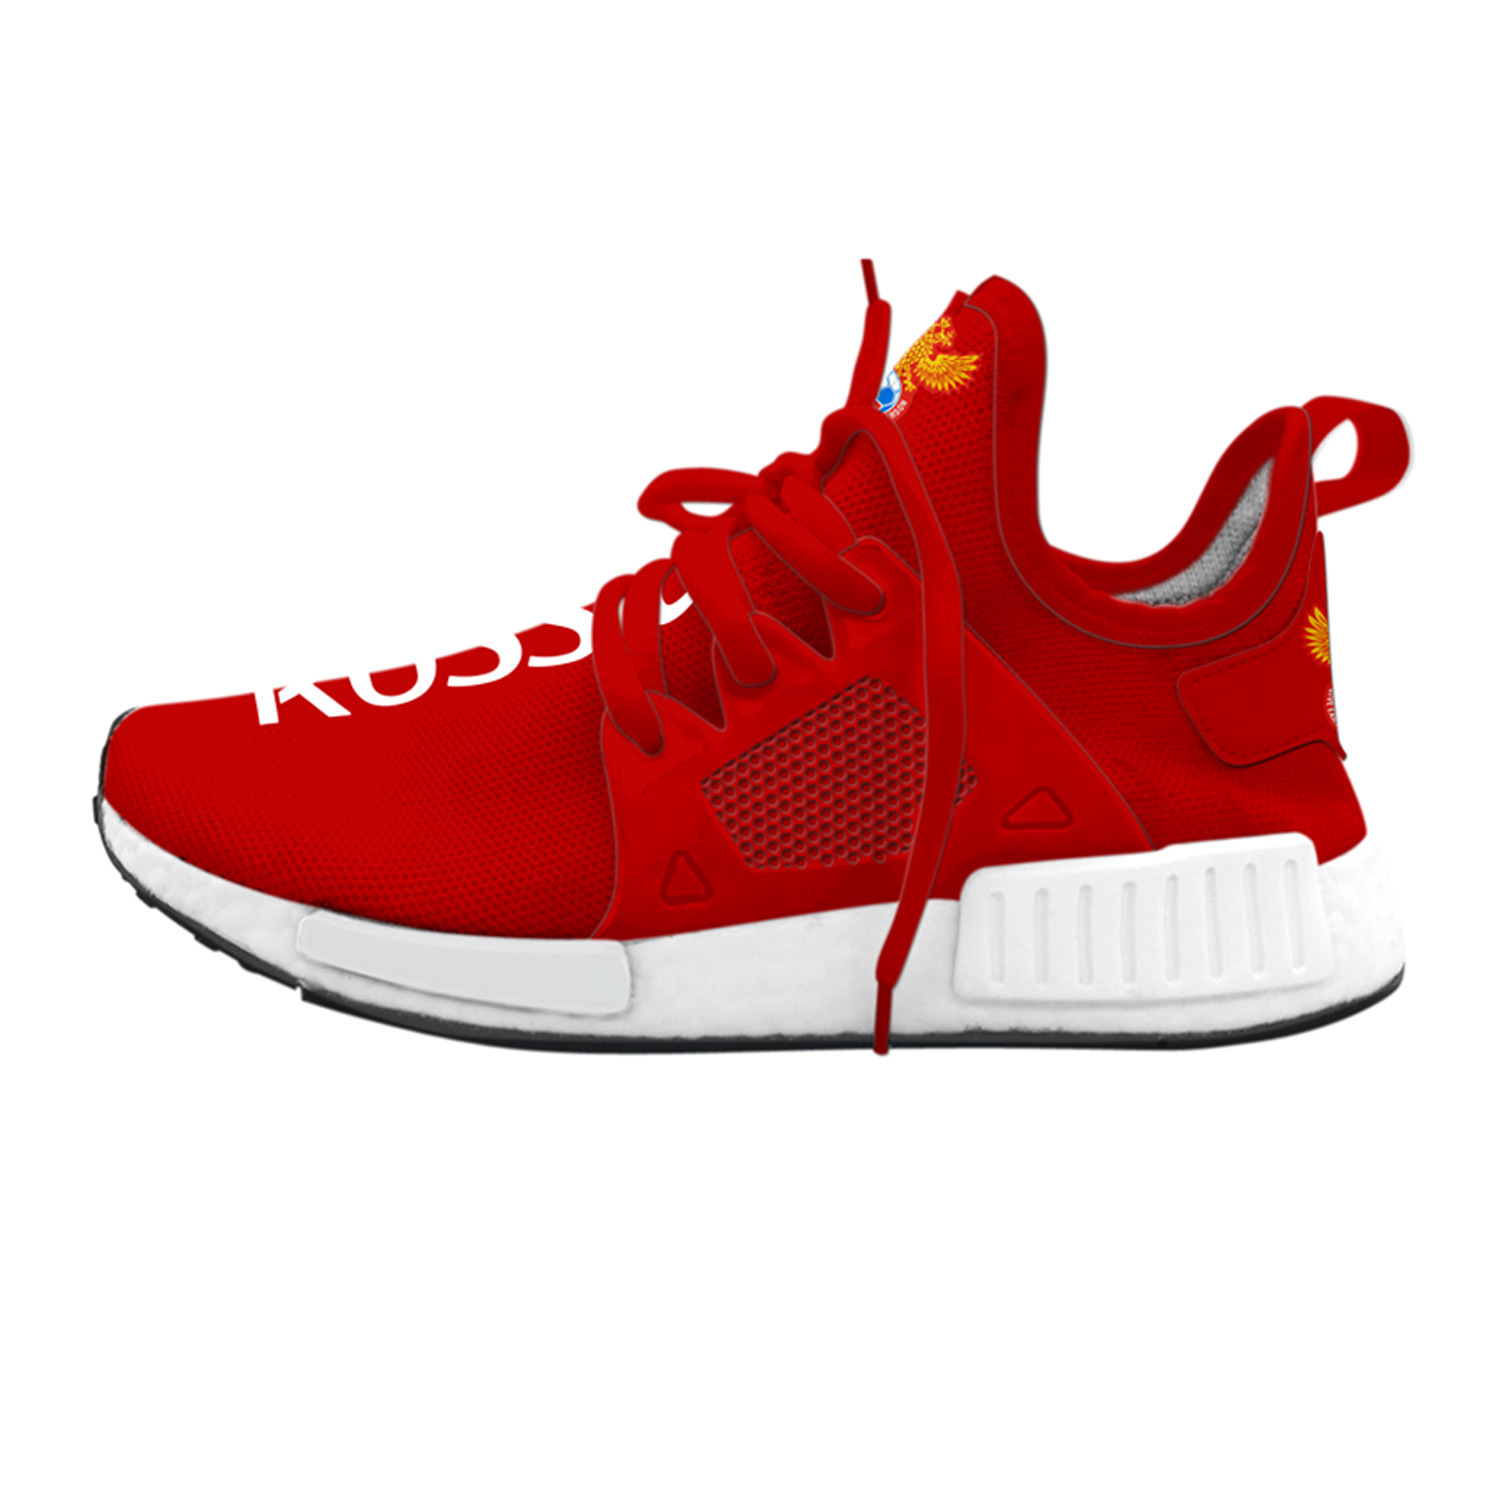 timeless design 2e1ff 097f6 [Hot Item] New Running Nmd Sneakers Buy Red Sports Shoes Online